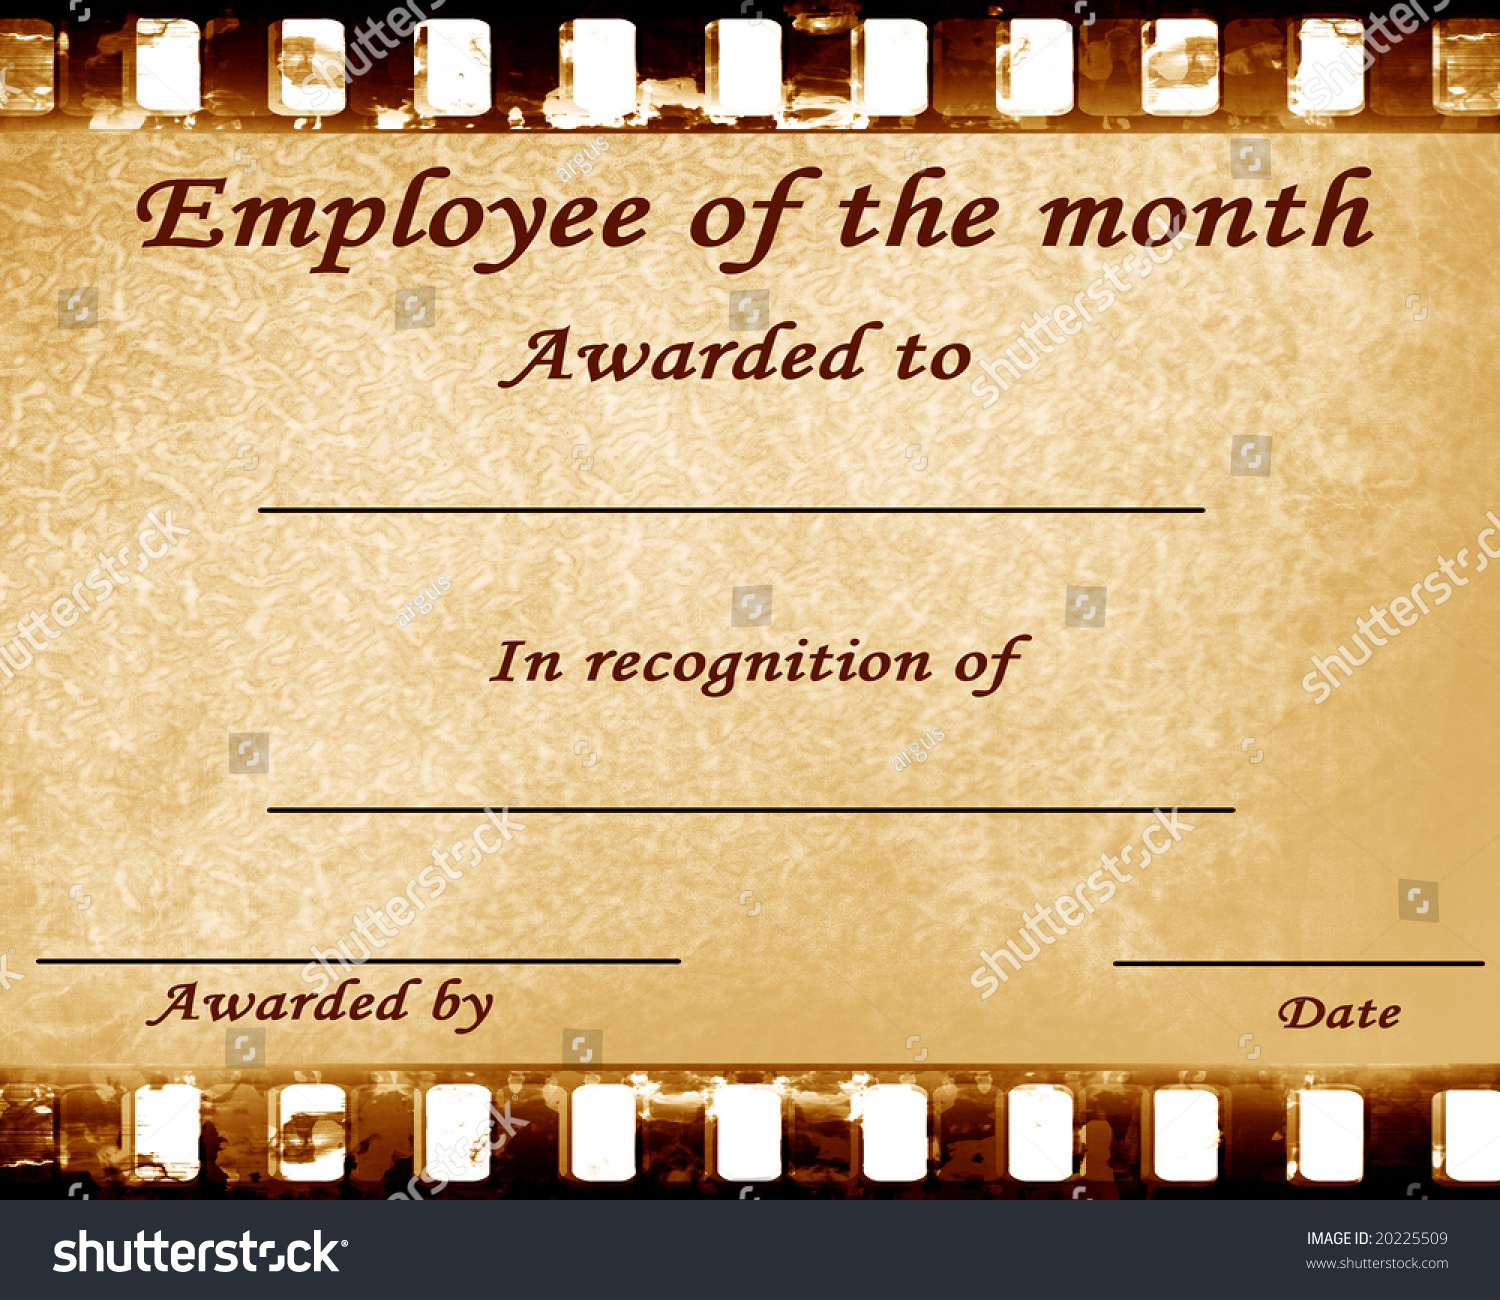 Free Employee Of The Month Certificate Template employment – Employee of the Month Certificate Template Free